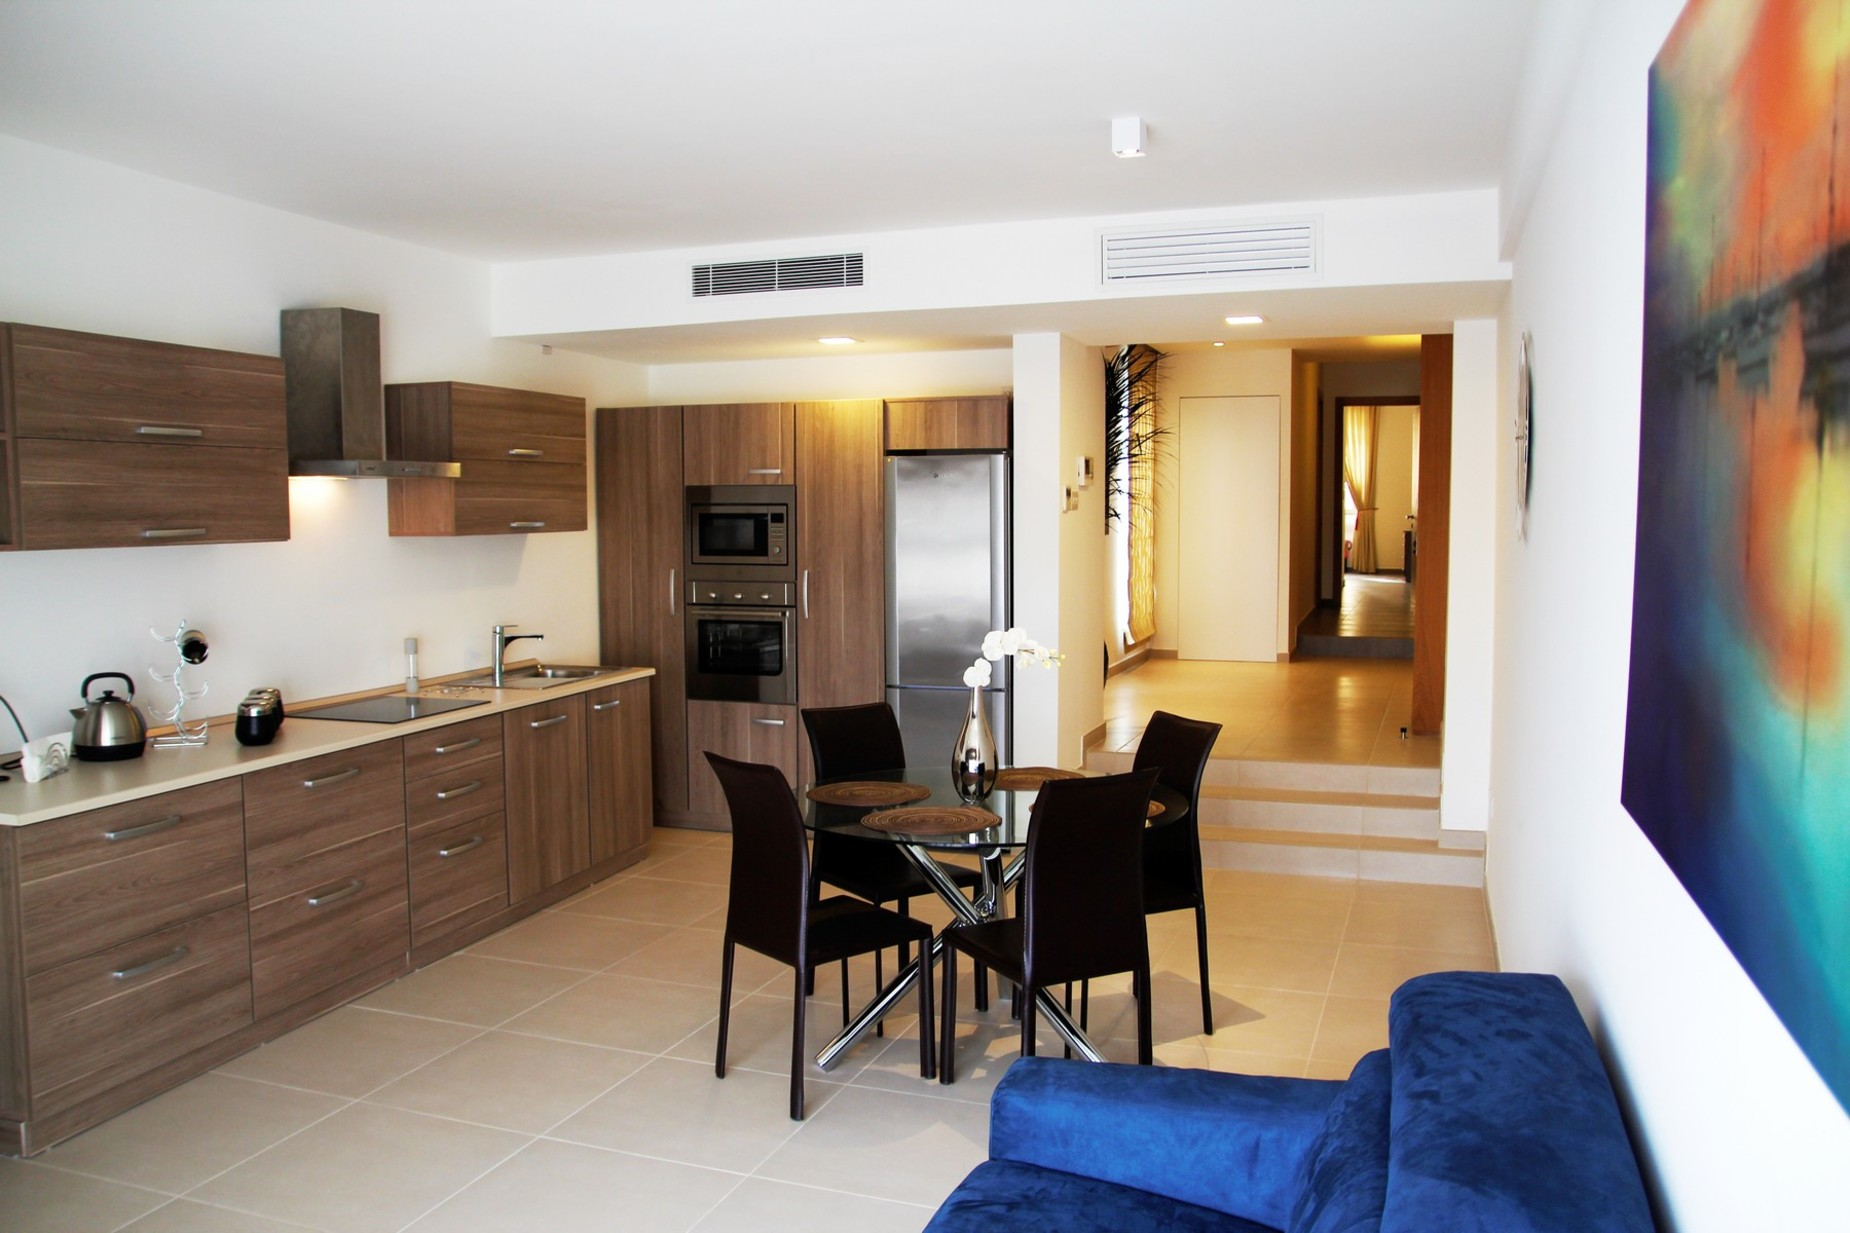 3 bed Apartment For Sale in Vittoriosa, Vittoriosa - thumb 7